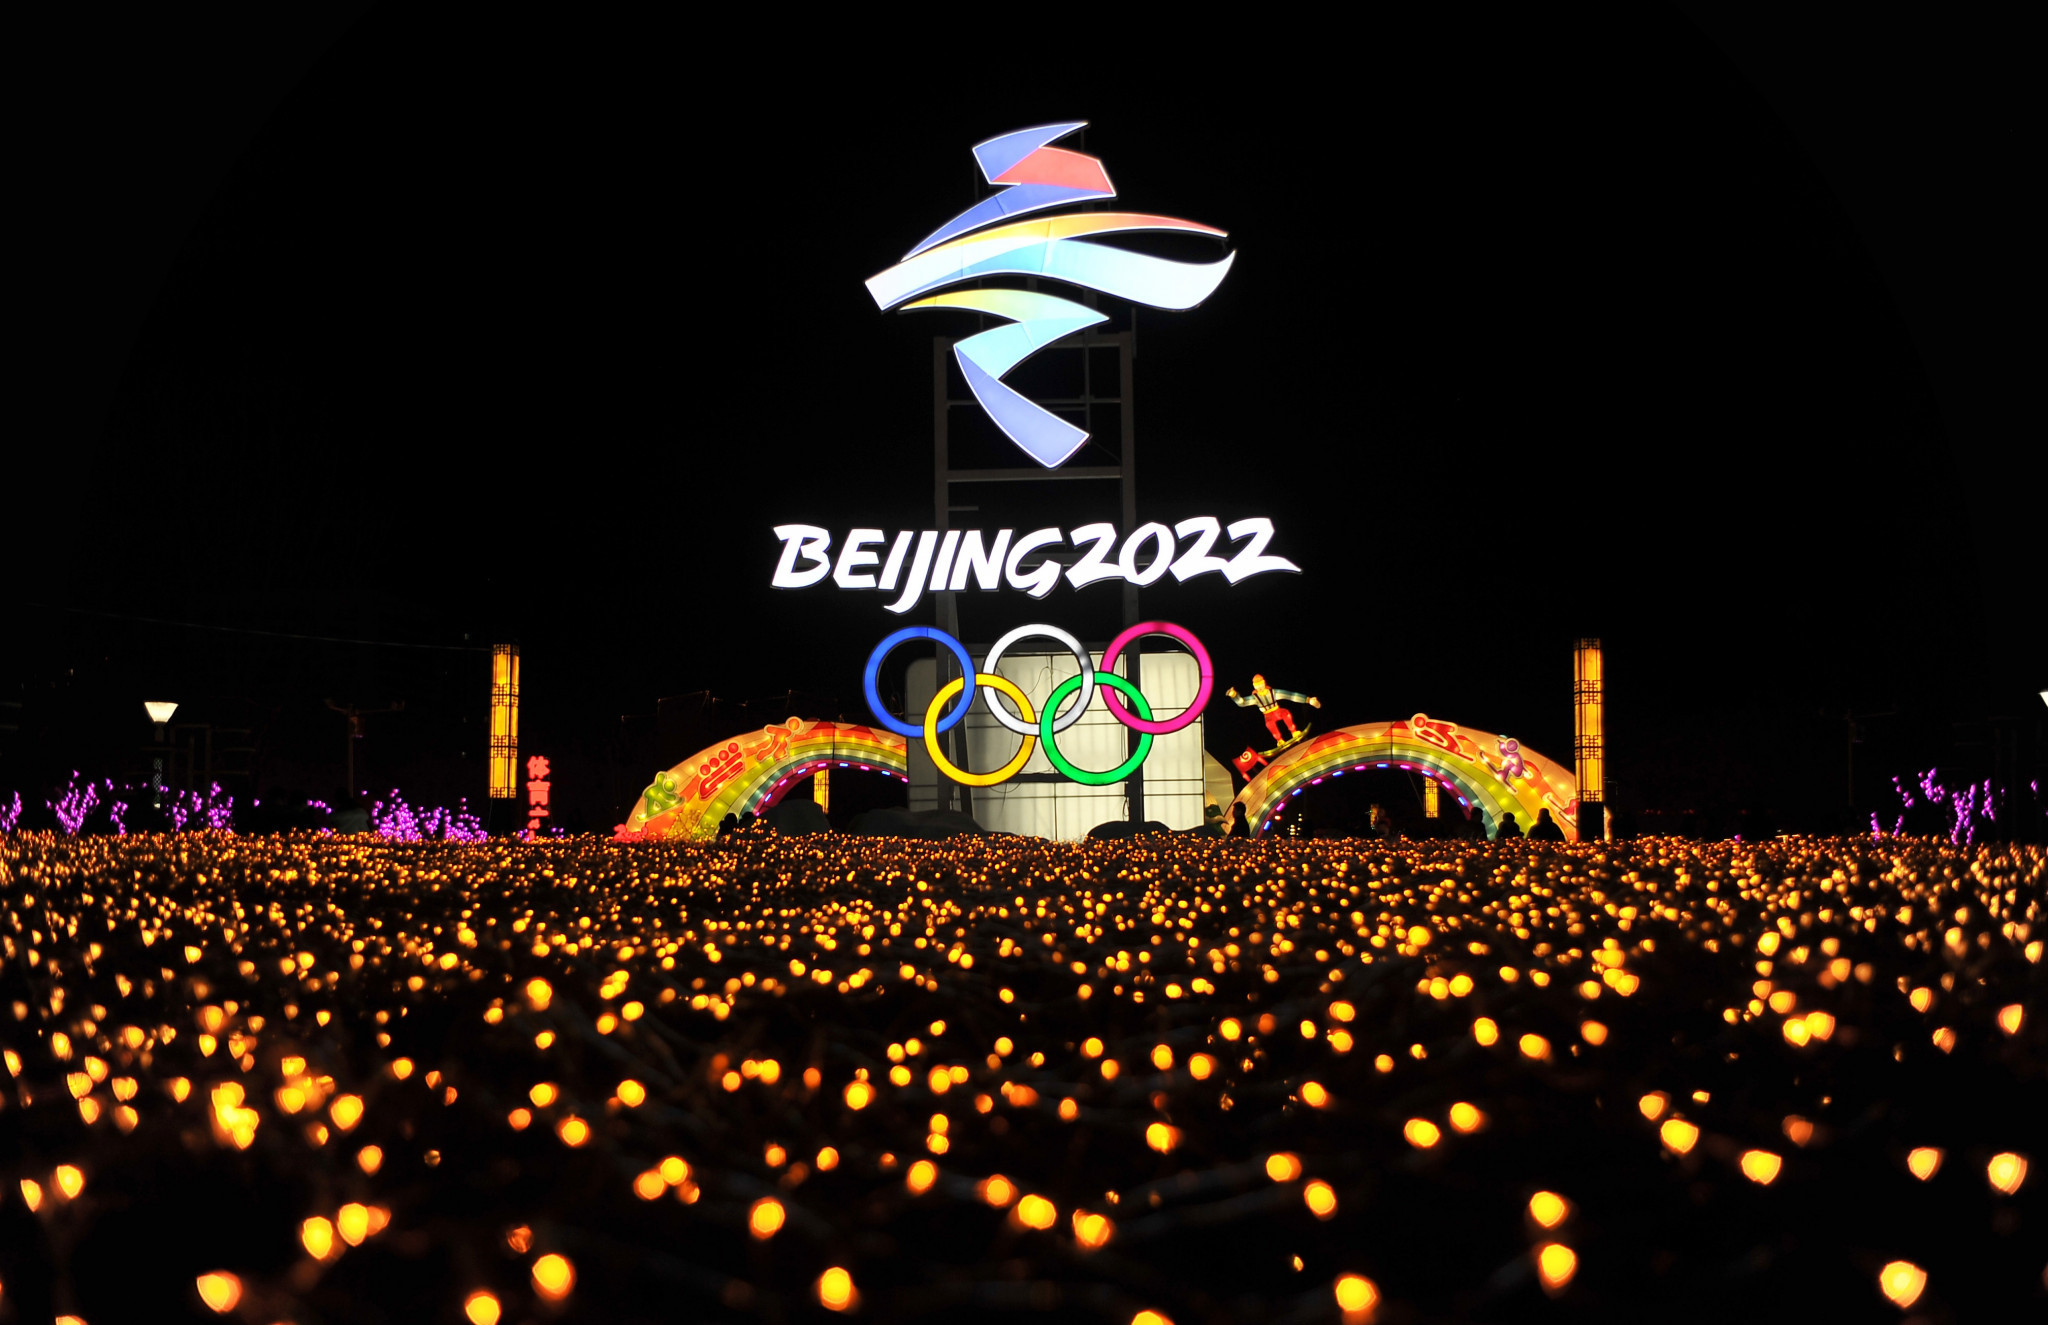 China aiming to launch digital currency in time for Beijing 2022 Winter Olympics